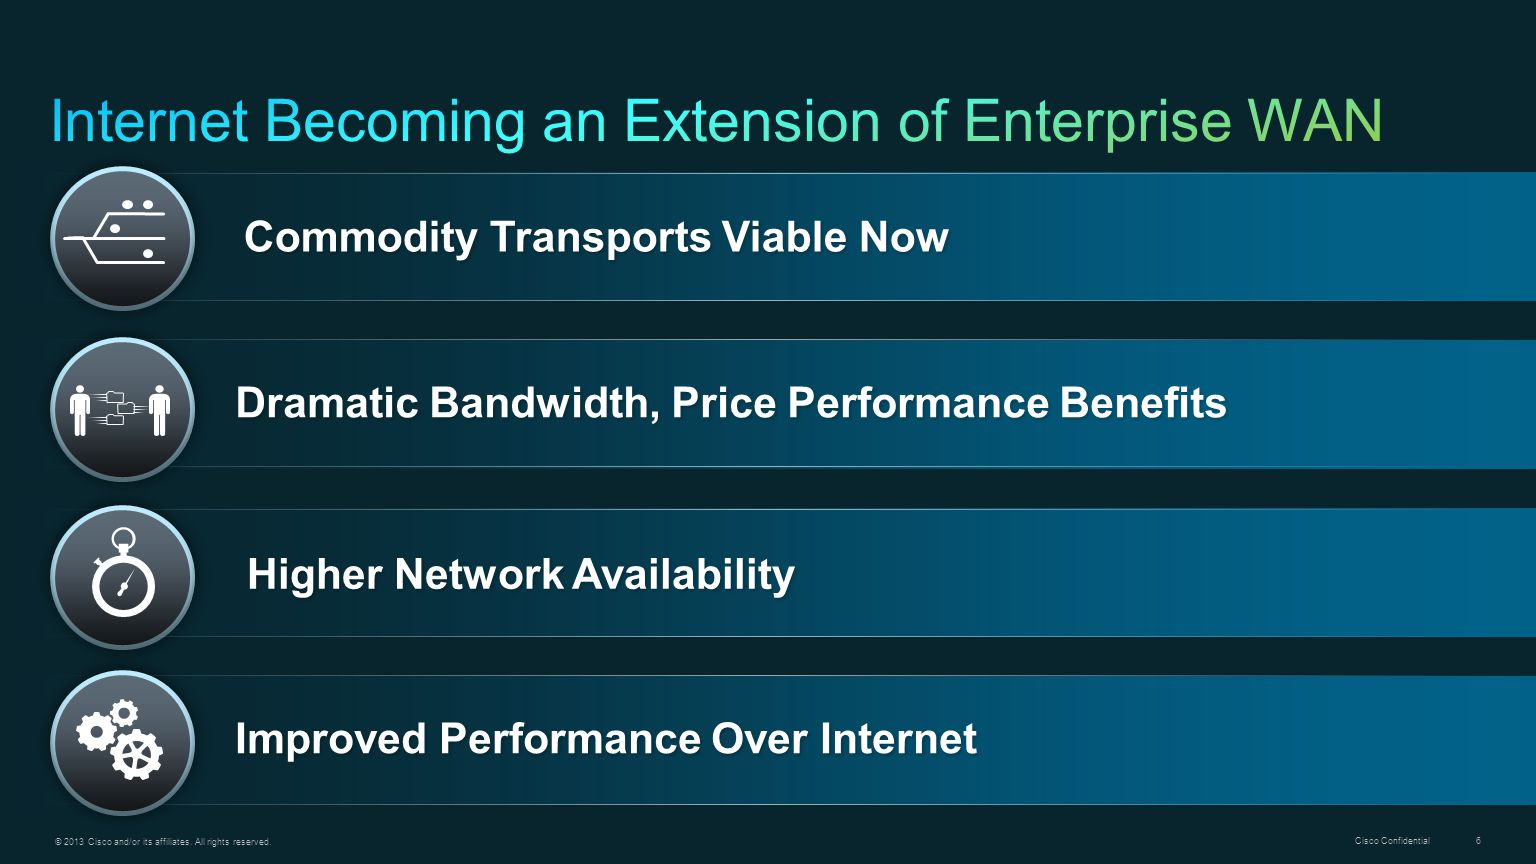 Internet Becoming an Extension of Enterprise WAN